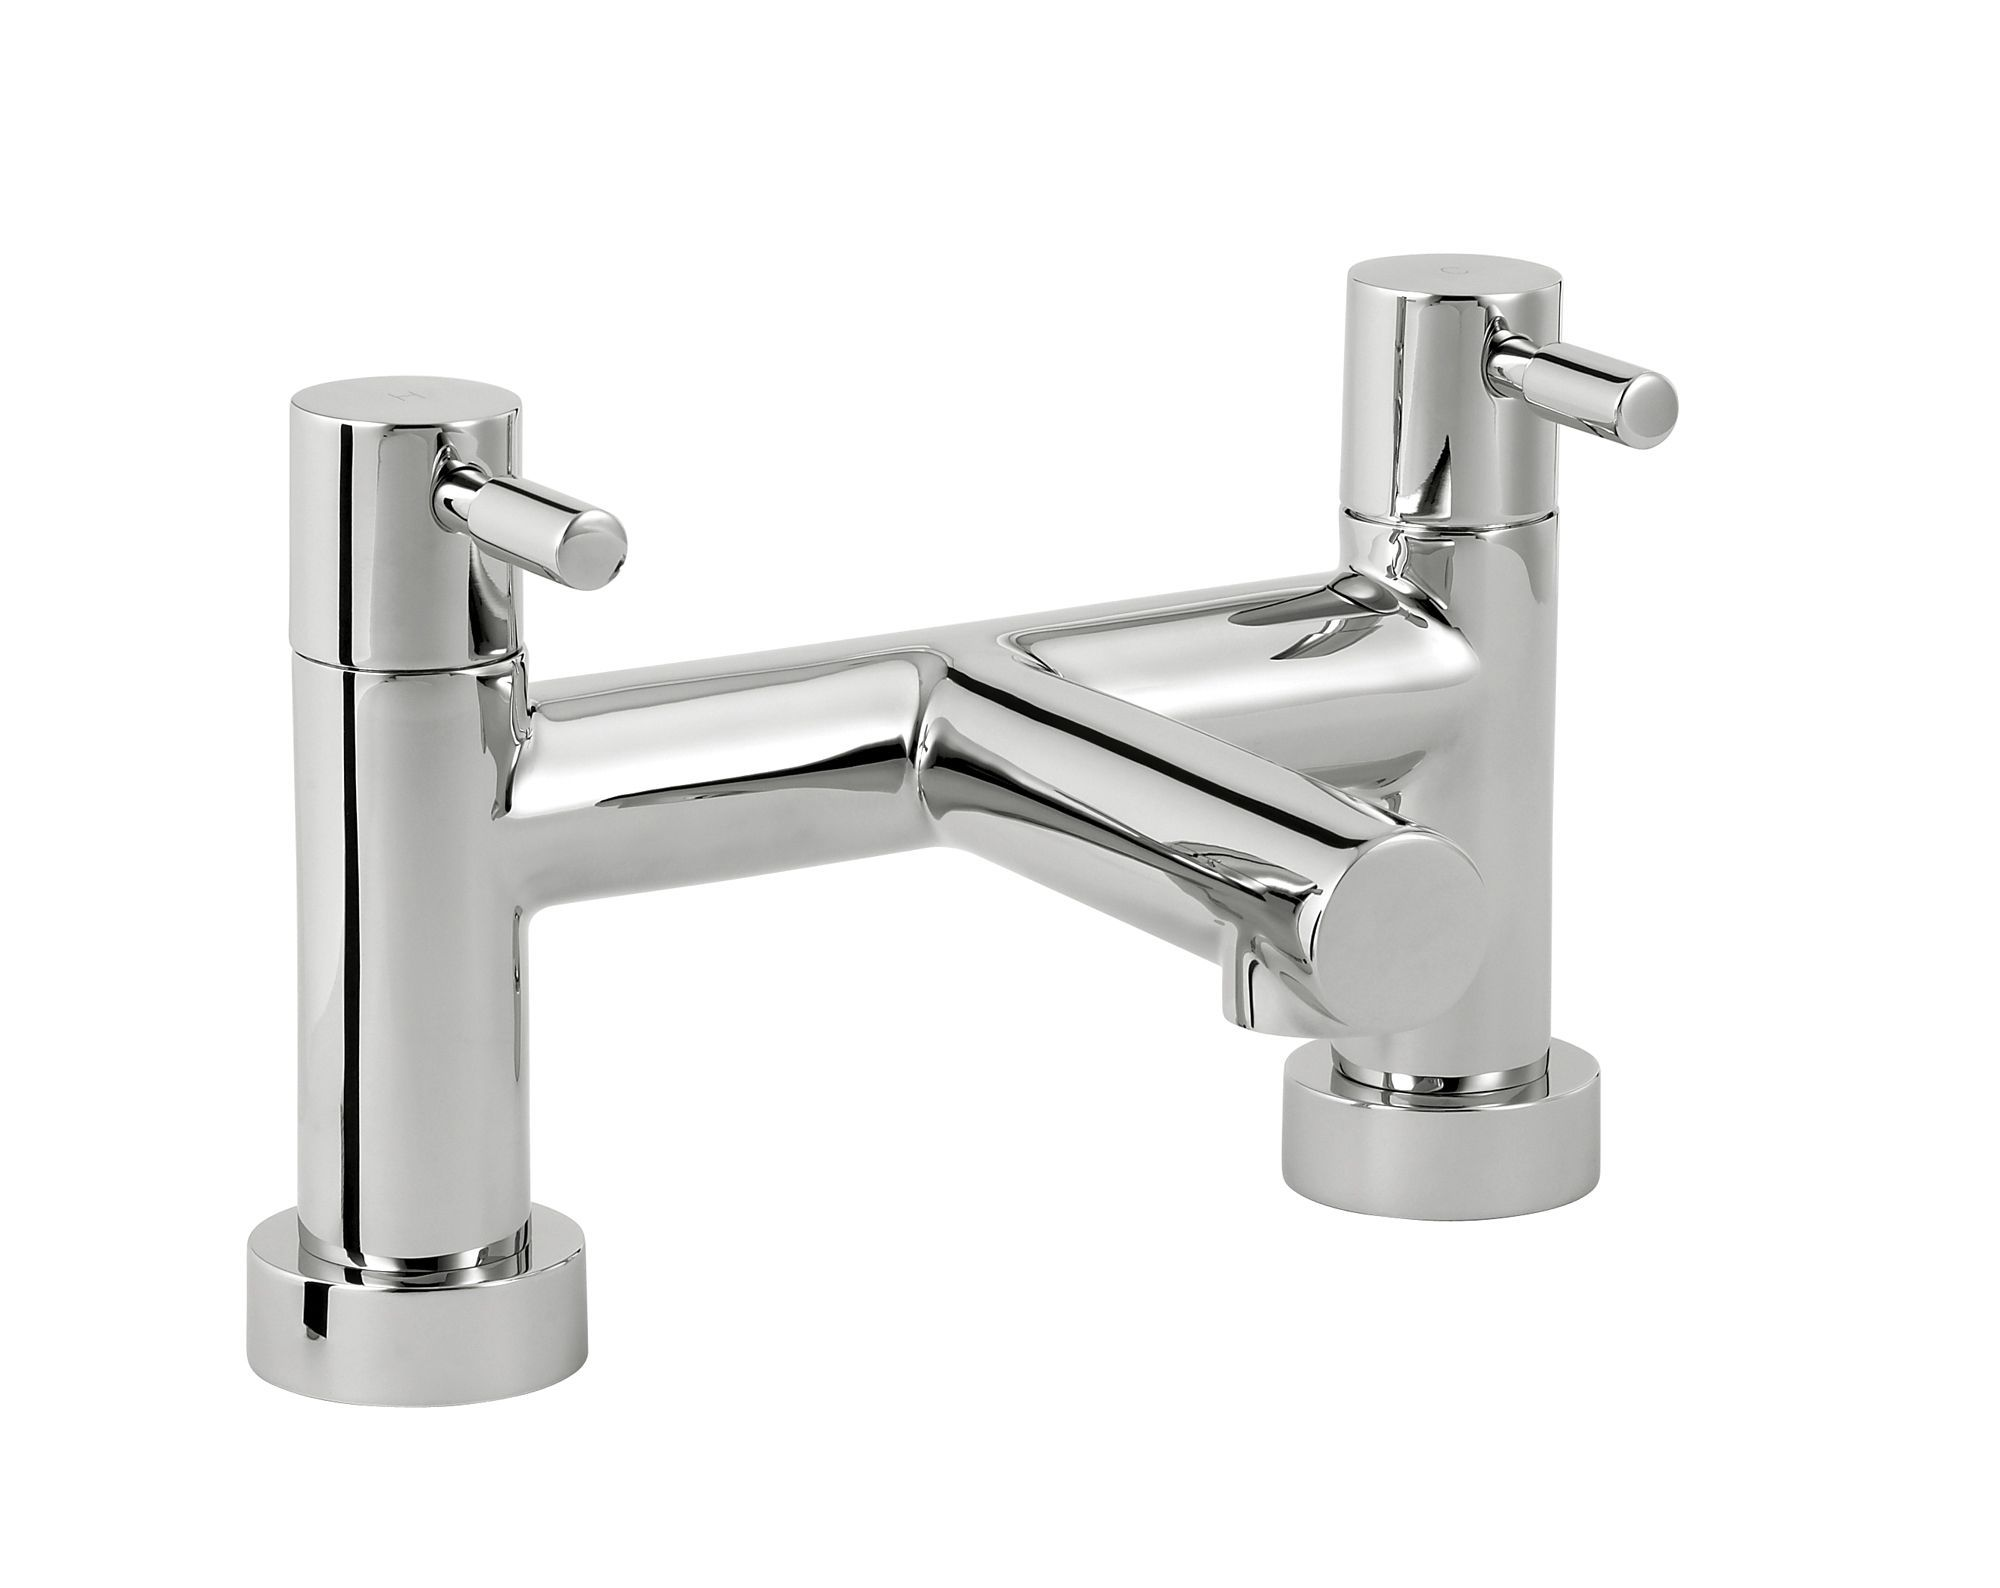 cooke lewis cirque chrome bath shower mixer tap departments cooke lewis cirque chrome bath filler tap